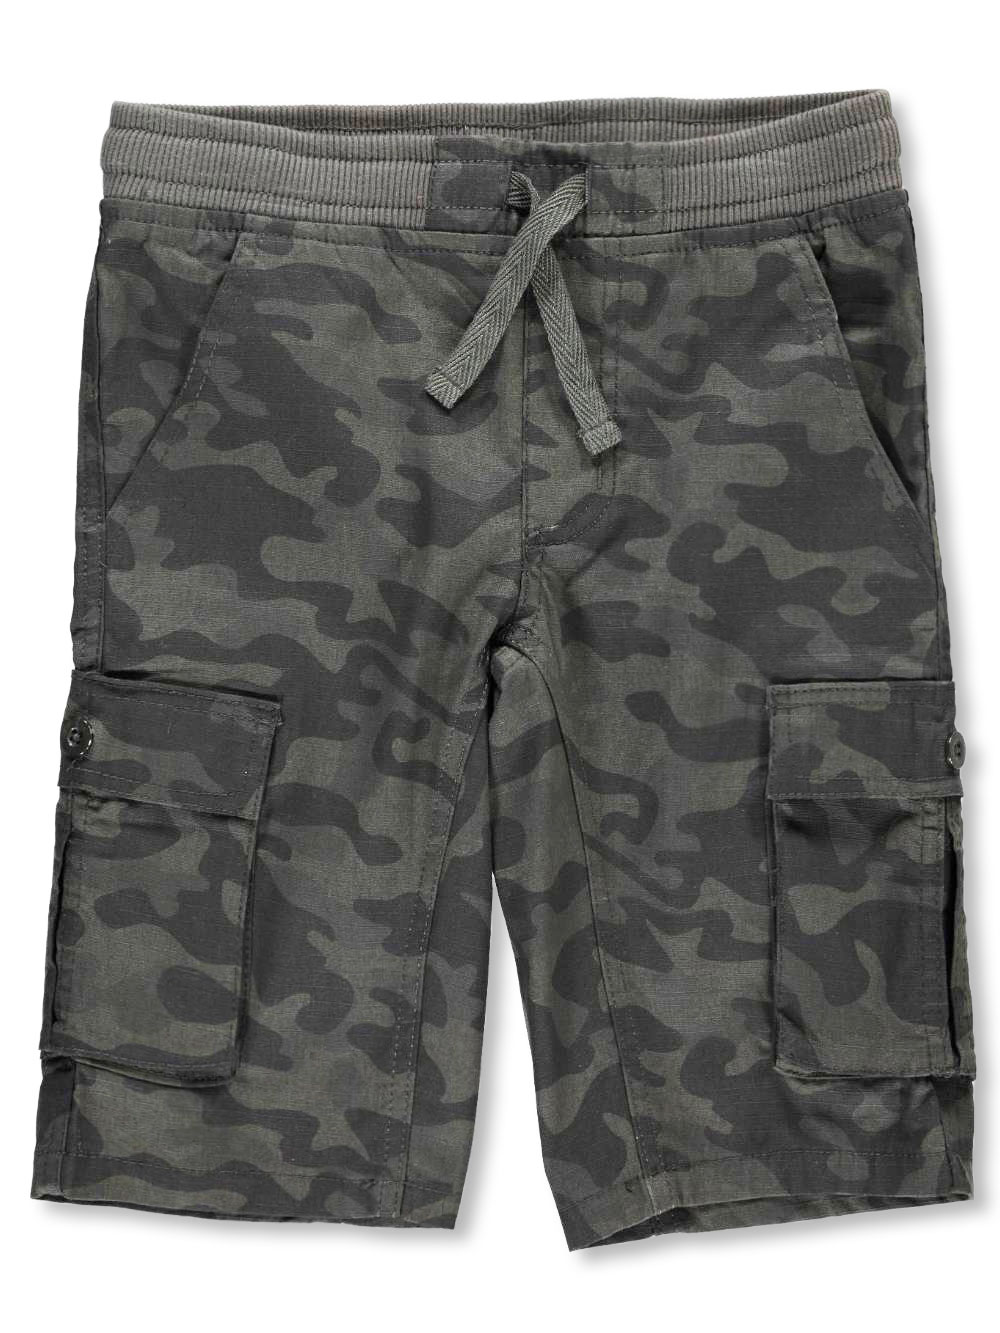 Kids Boys Camouflage Short Pants Drawstring or Stretched Waist Stripy Short Pant